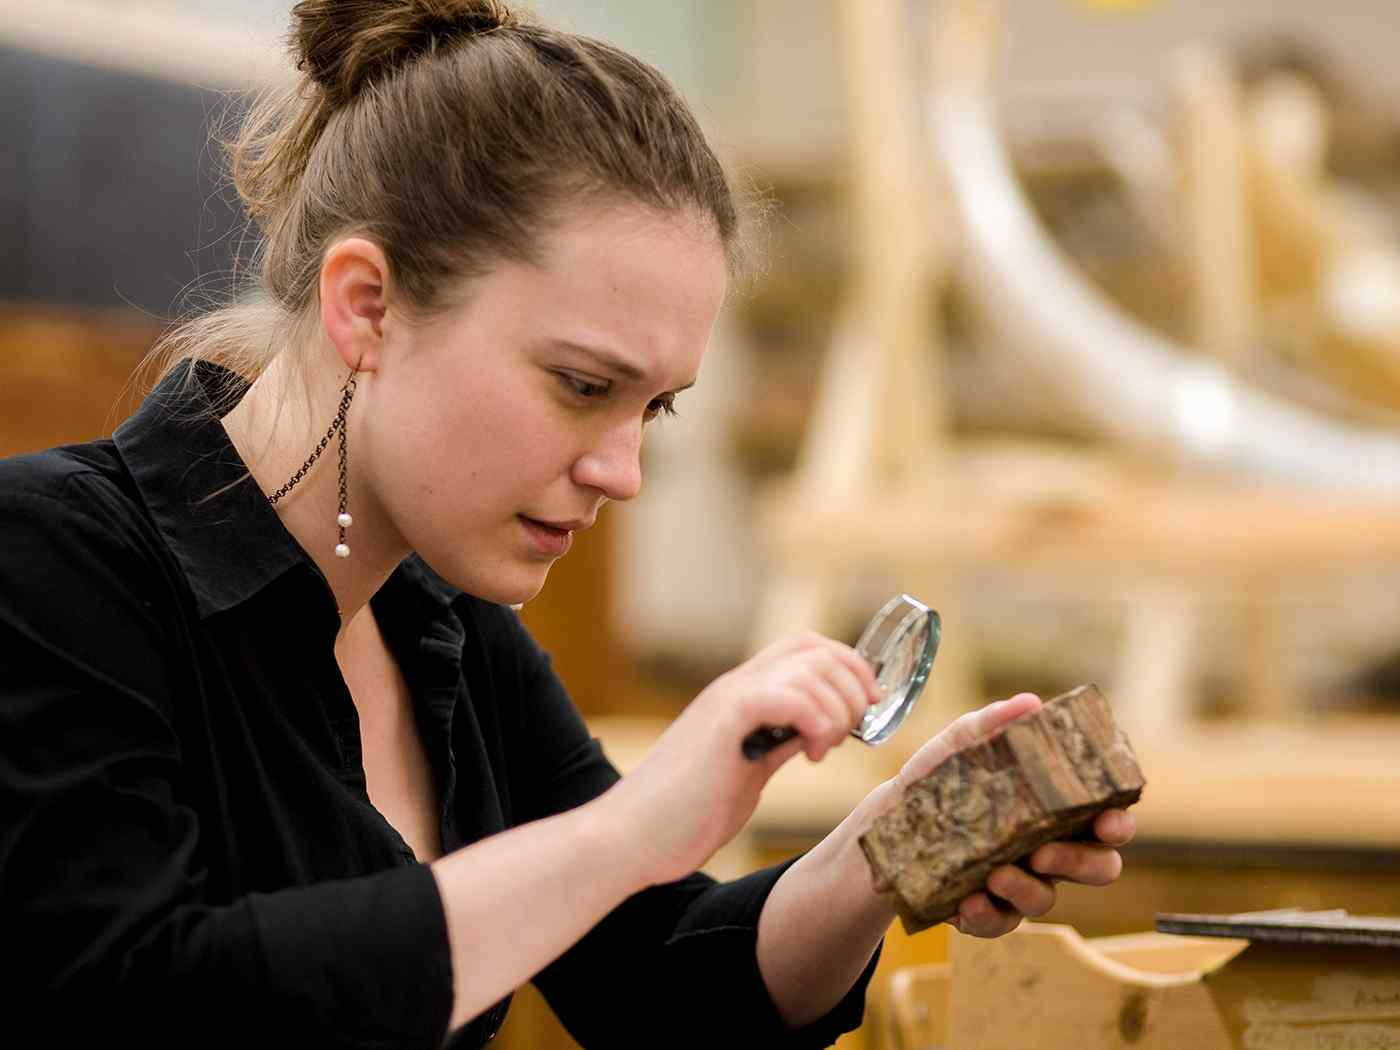 Female student examines a rock specimen